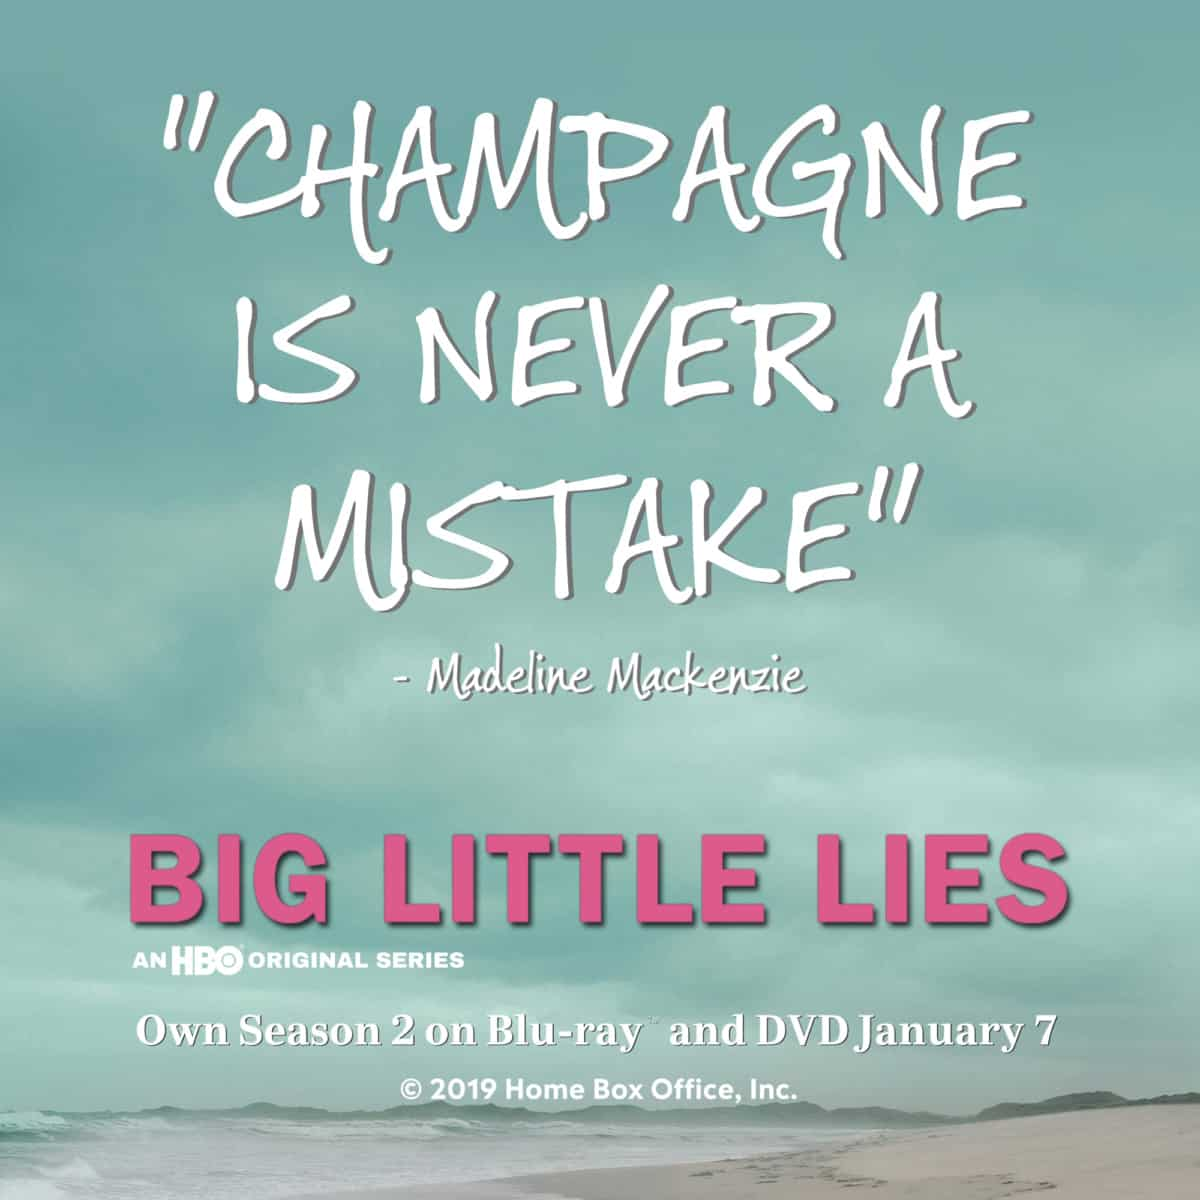 Big Little Lies Champagne meme